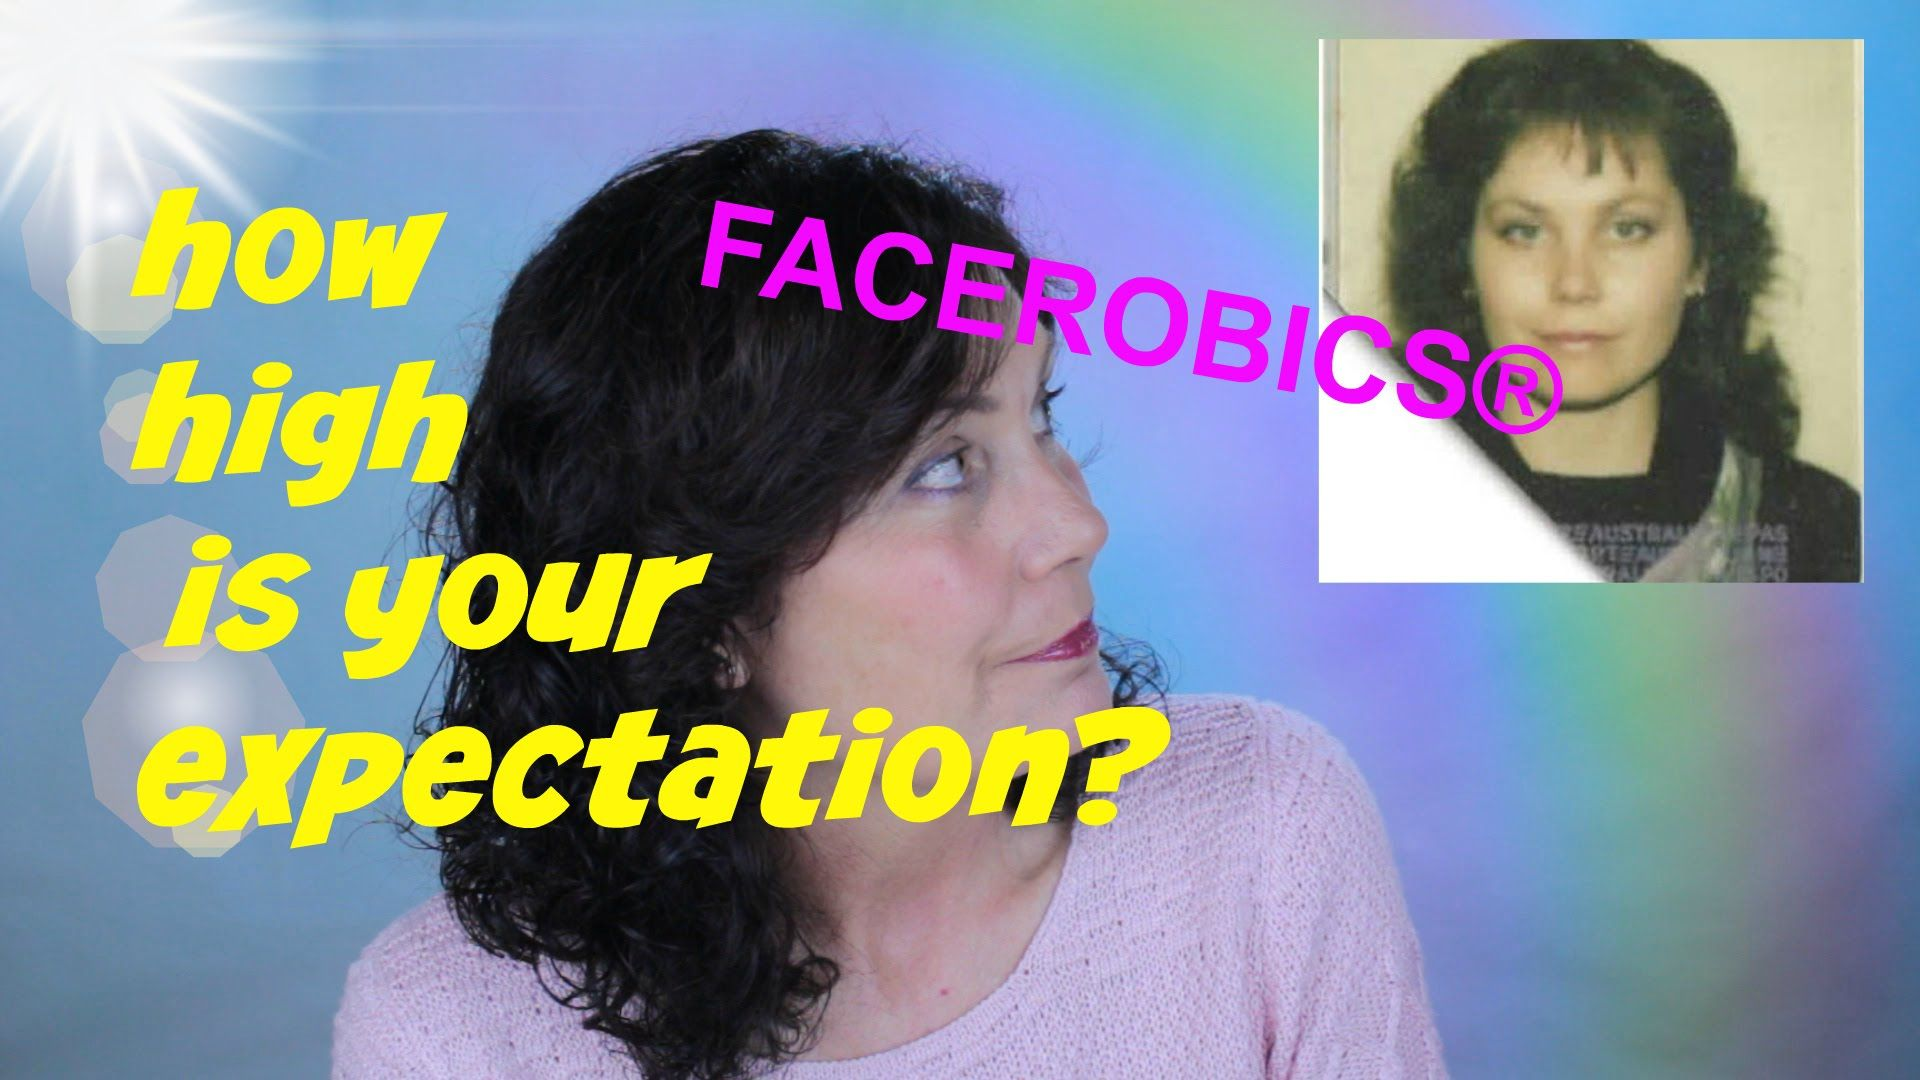 Face Exercise - How High Is Your Face Exercise Expectation?